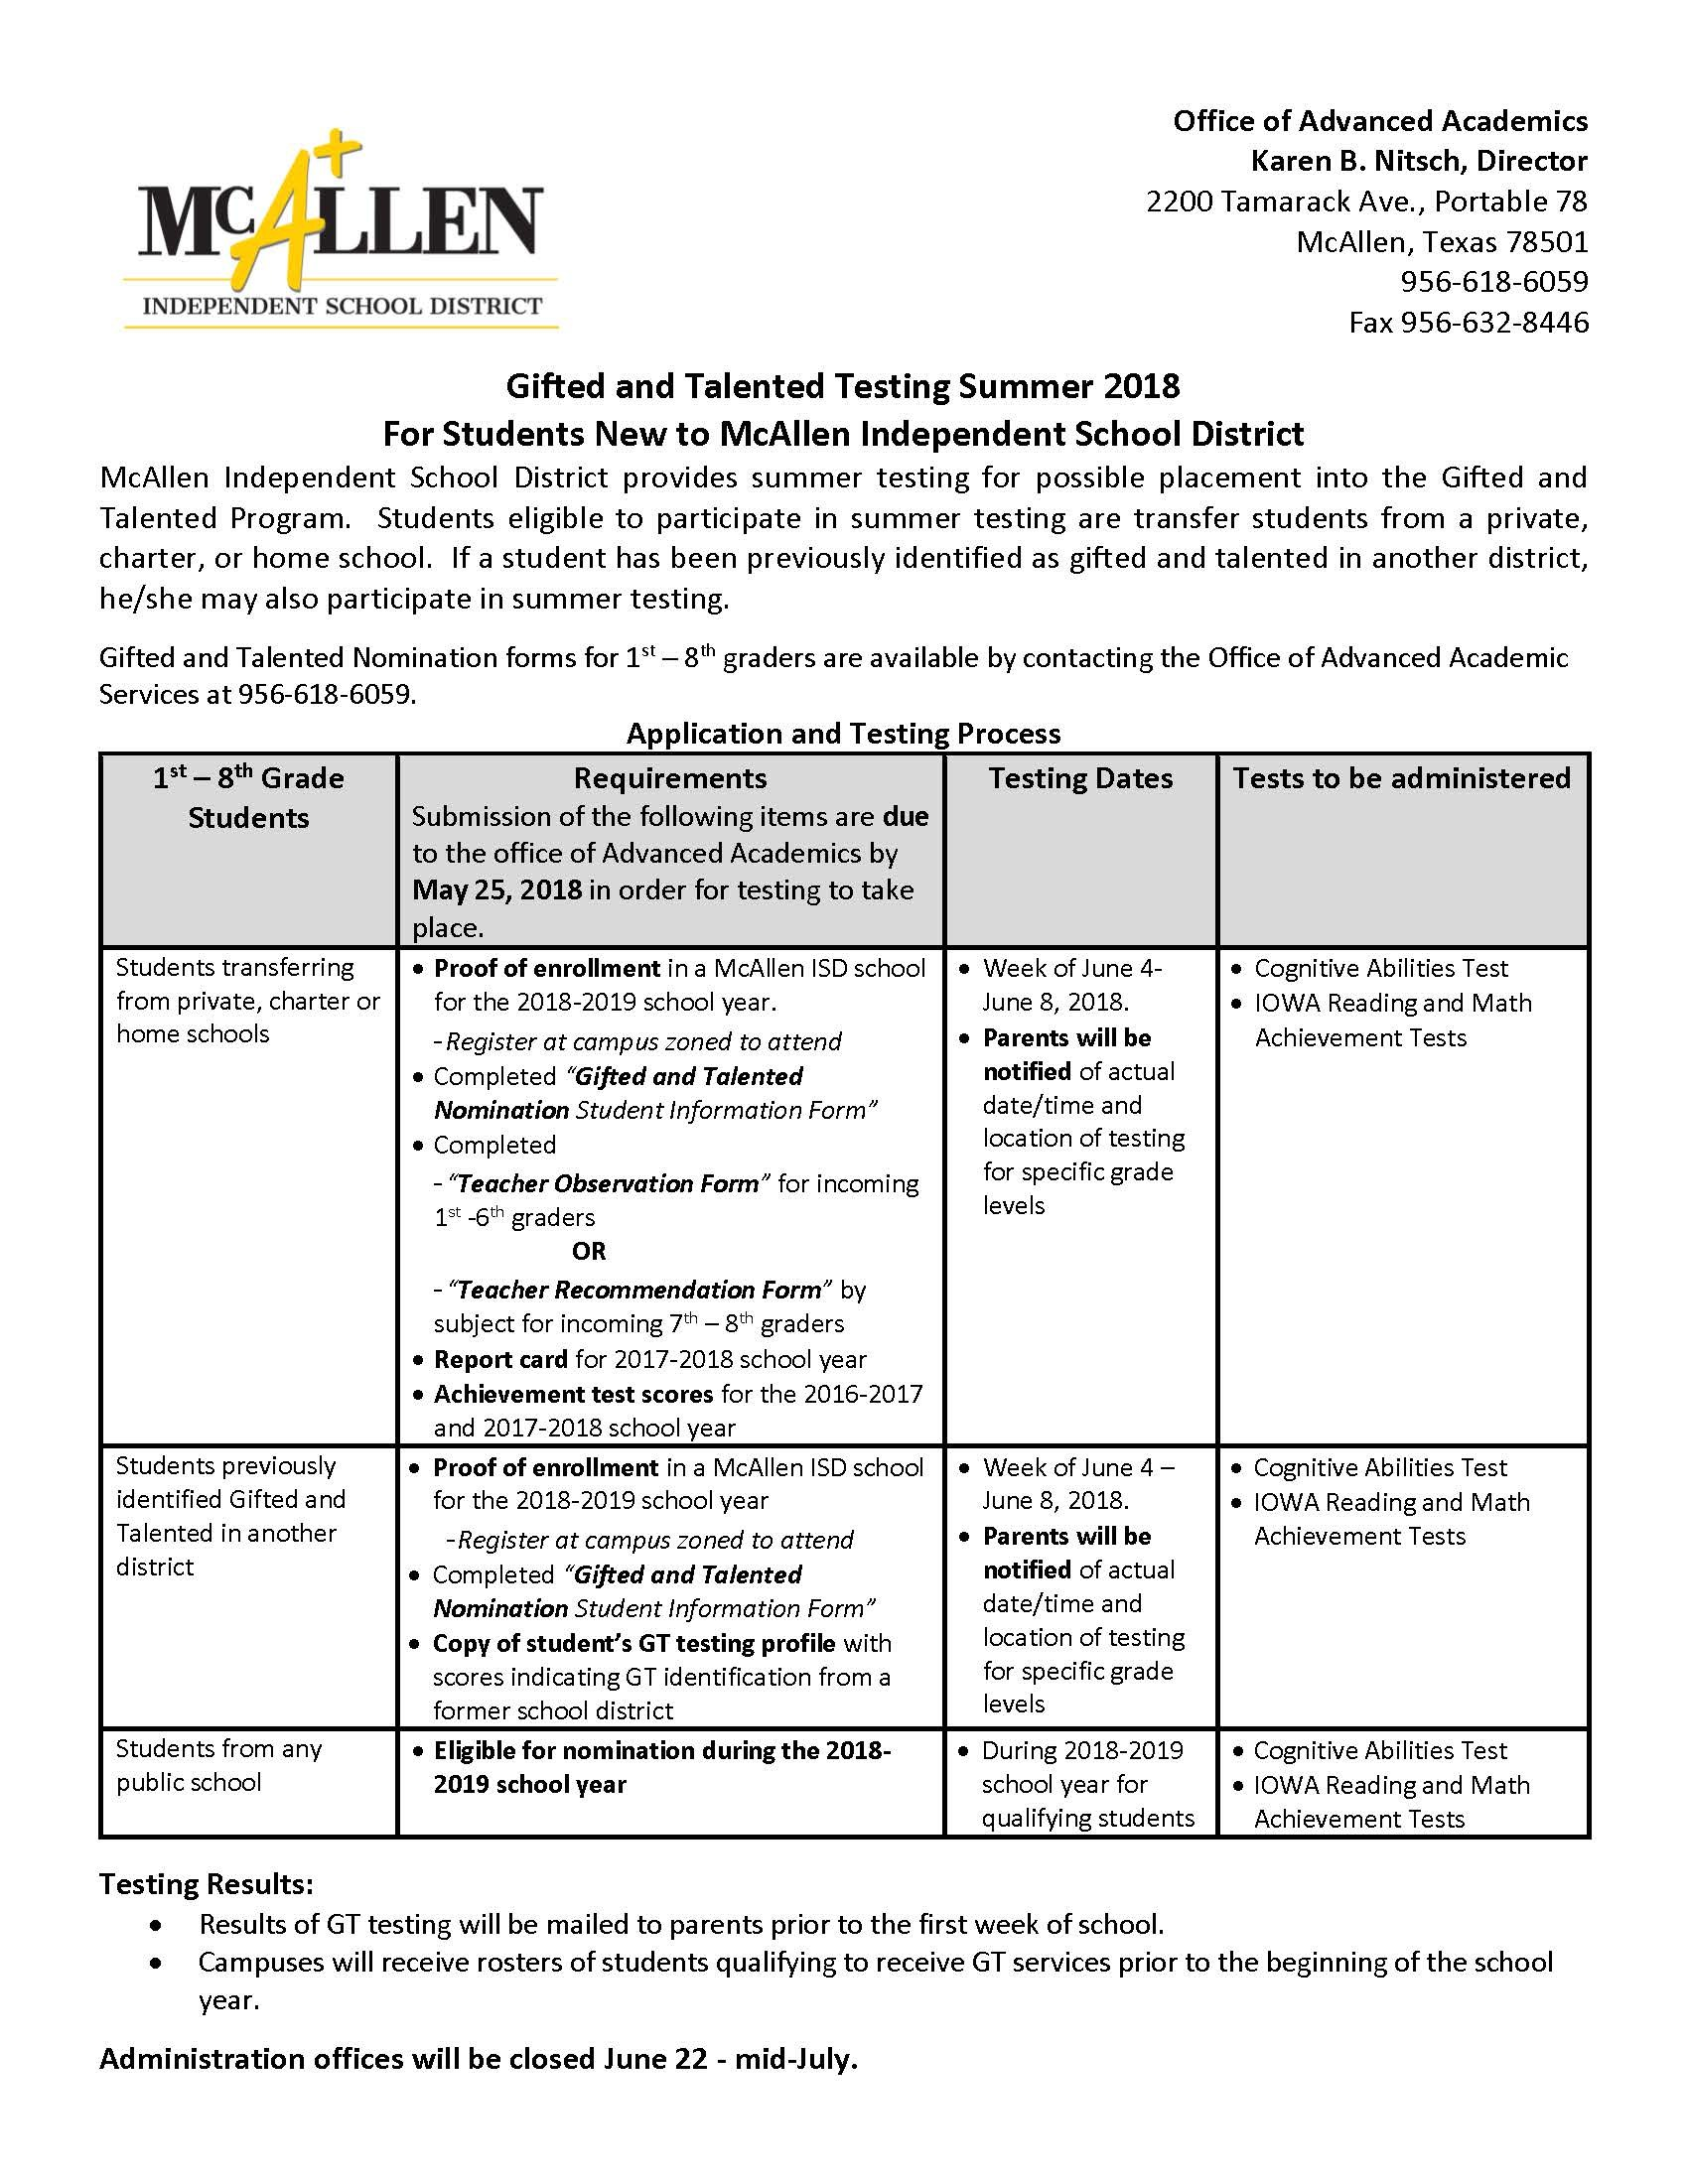 GT Summer Testing Information Page